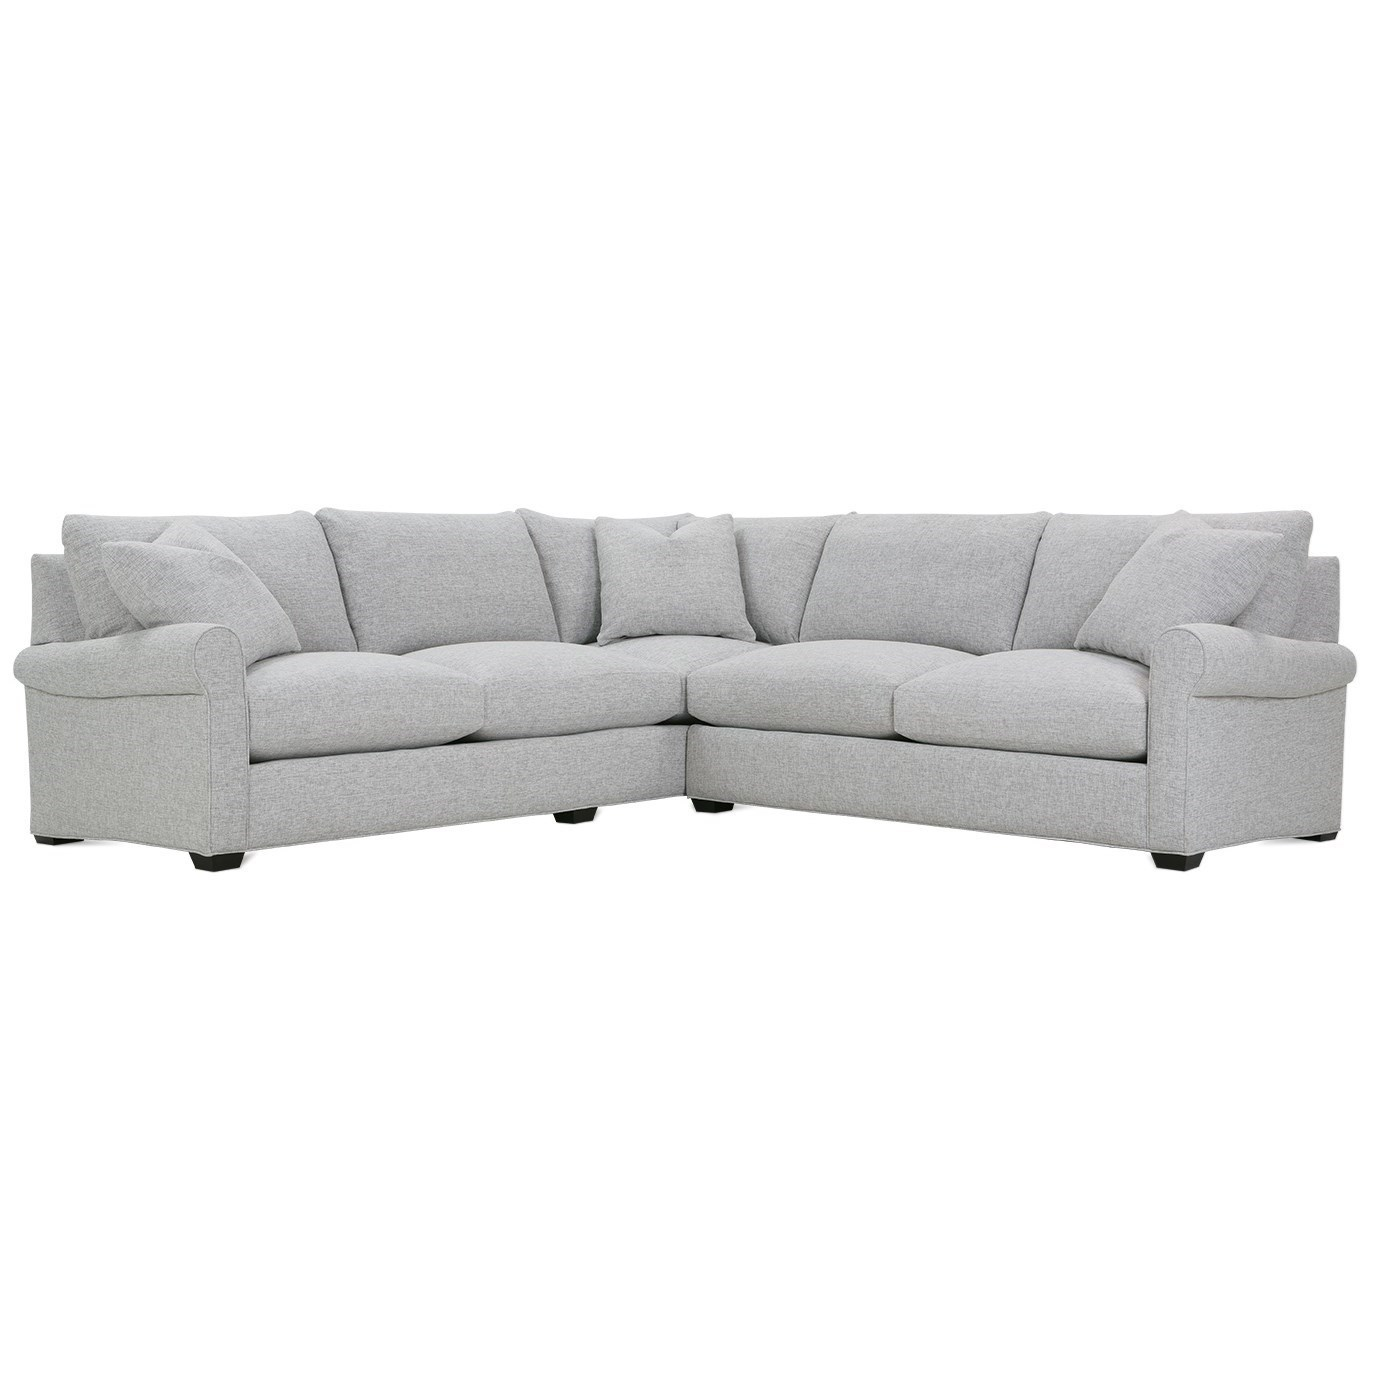 Aberdeen Sectional Sofa by Rowe at Steger's Furniture